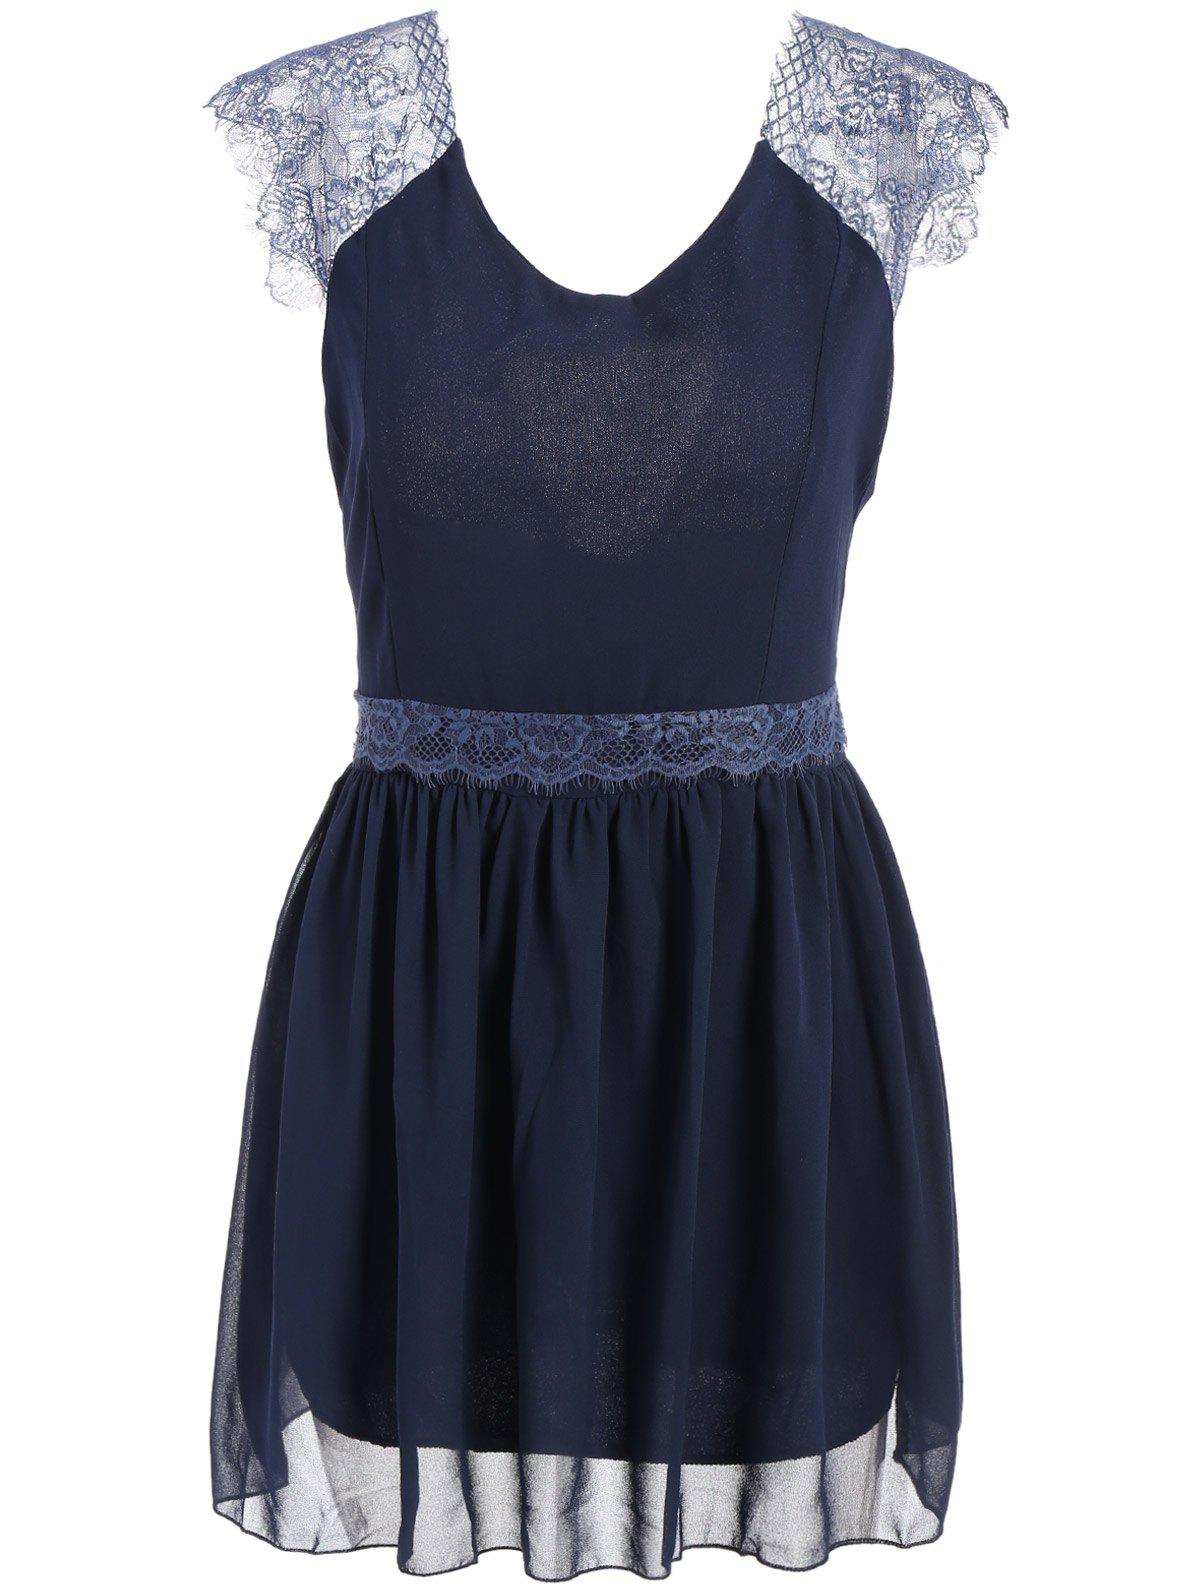 Lace Splicing Sleeveless Solid Color Backless Trendy Style Women's Dress - BLUE L